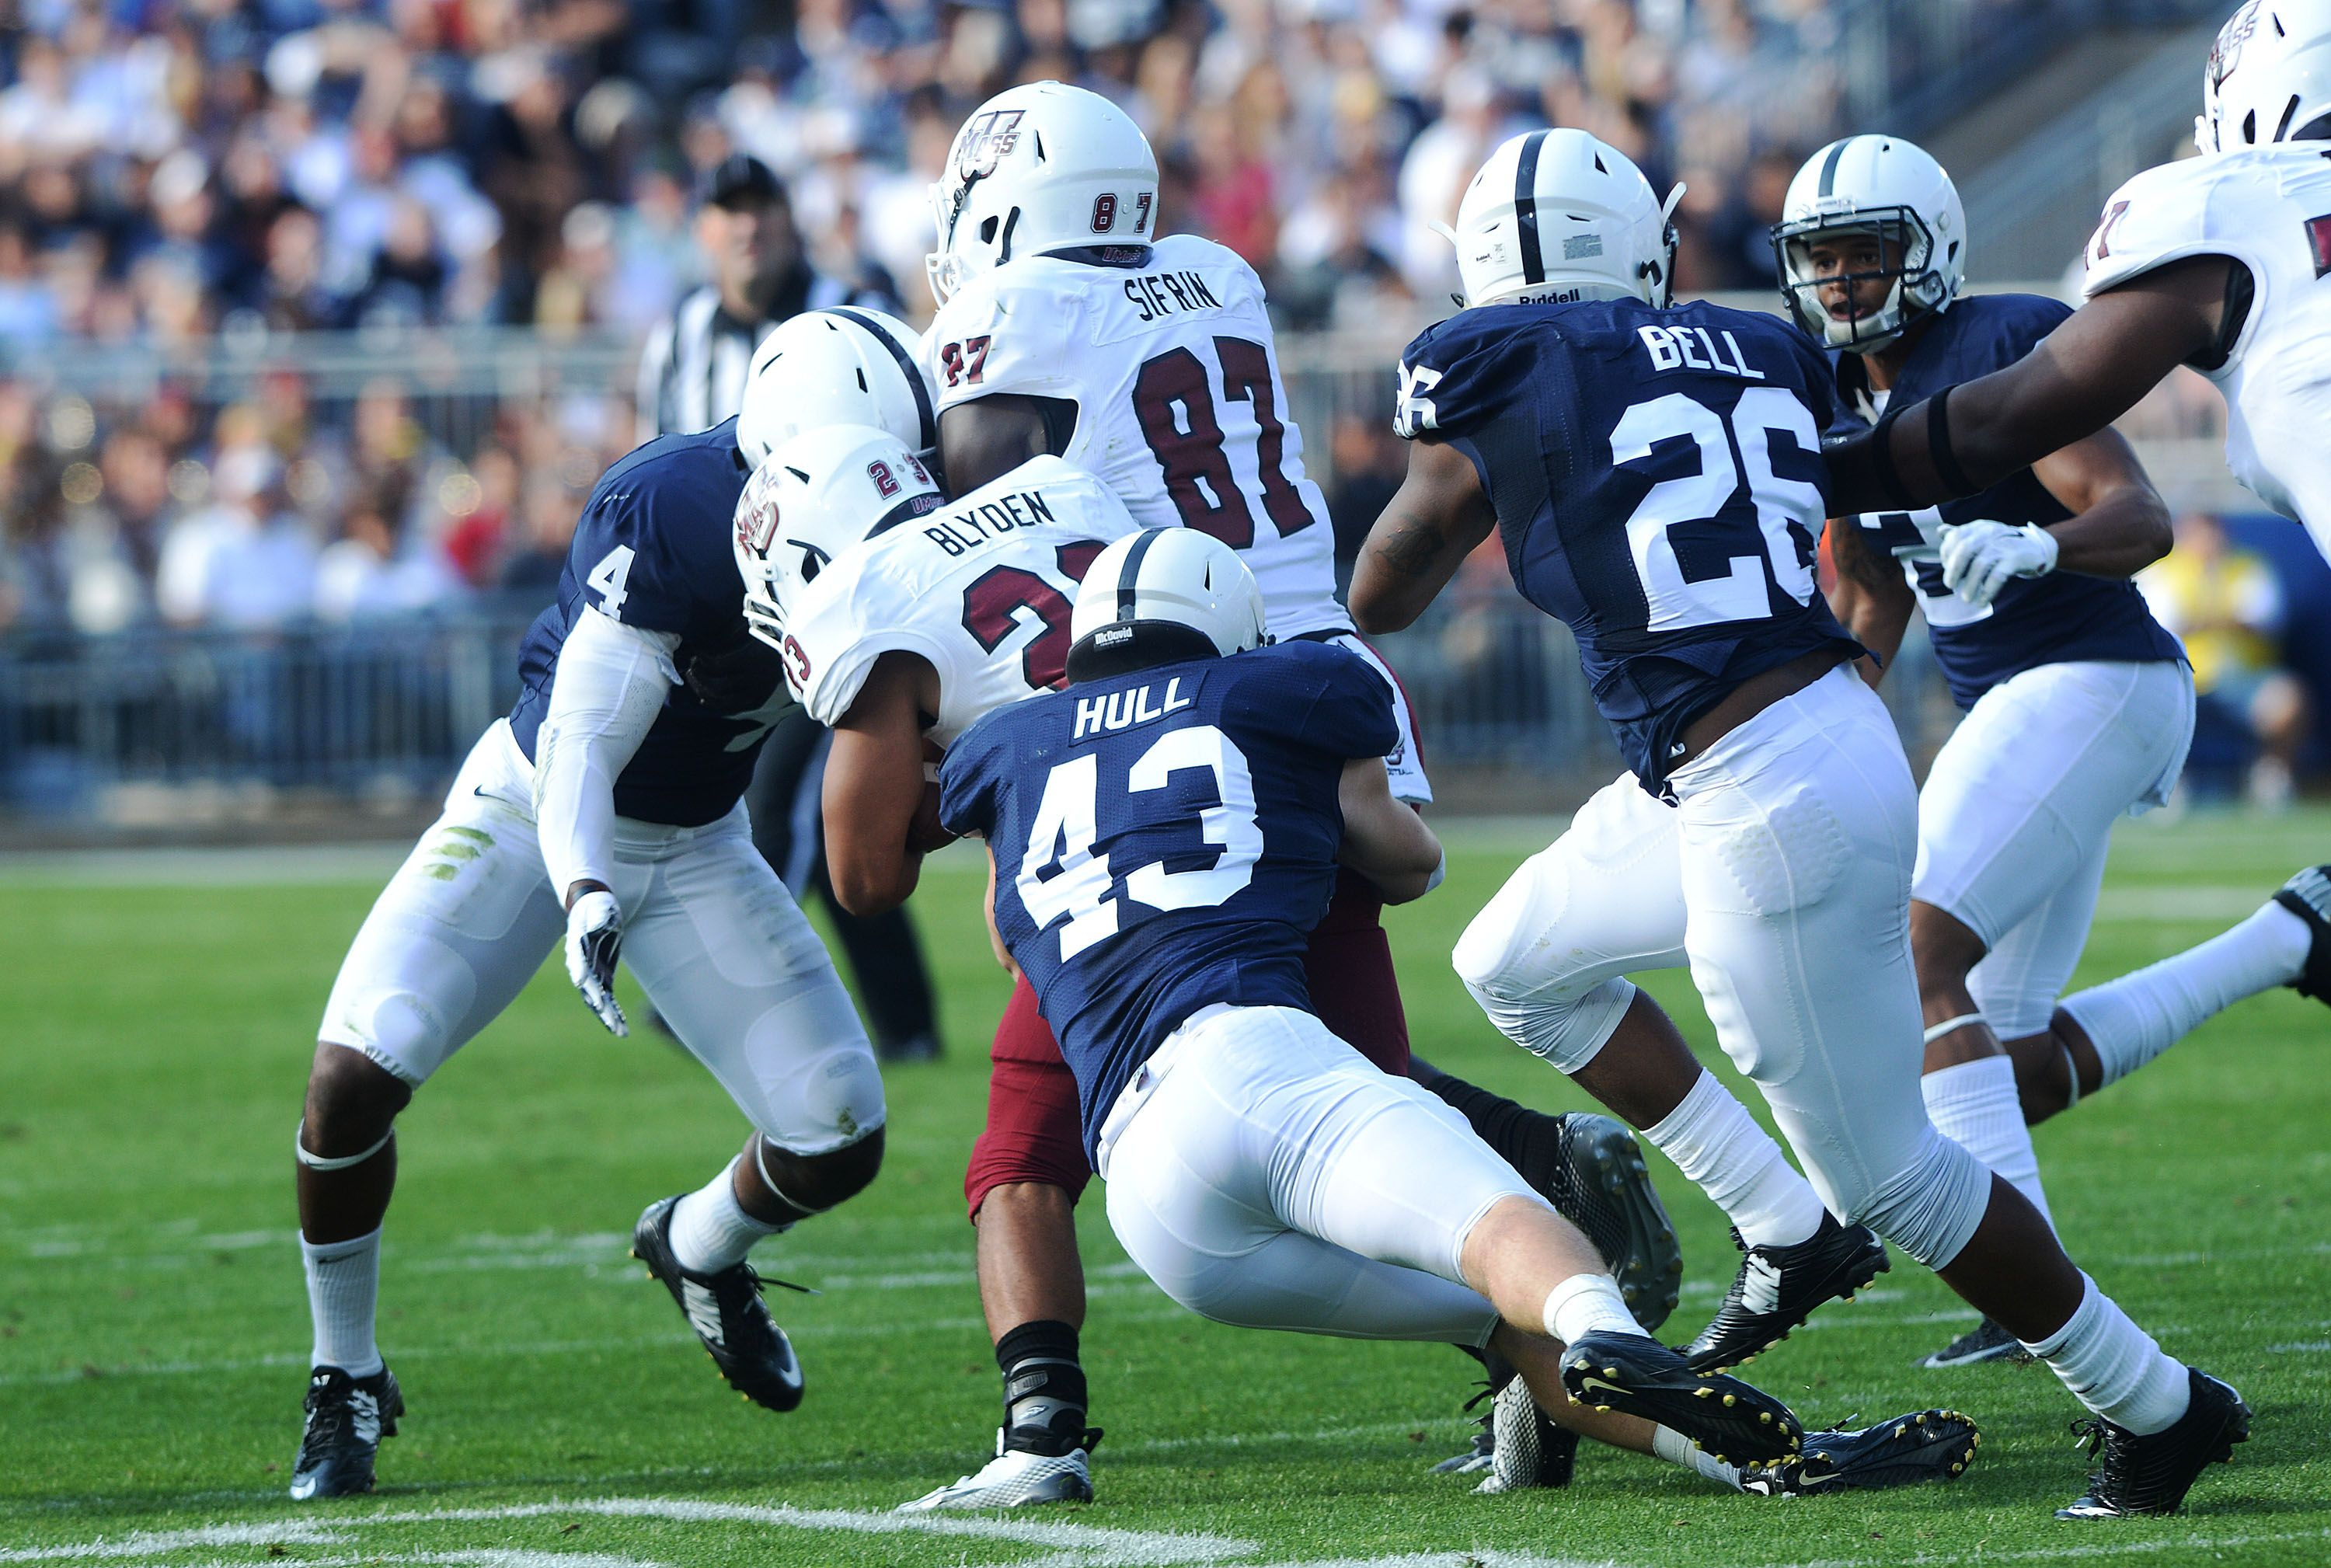 Penn State Football 2014 Linebacker Mike Hull Stops Umass Receiver Jean Sifrin Football Helmets Football Athlete